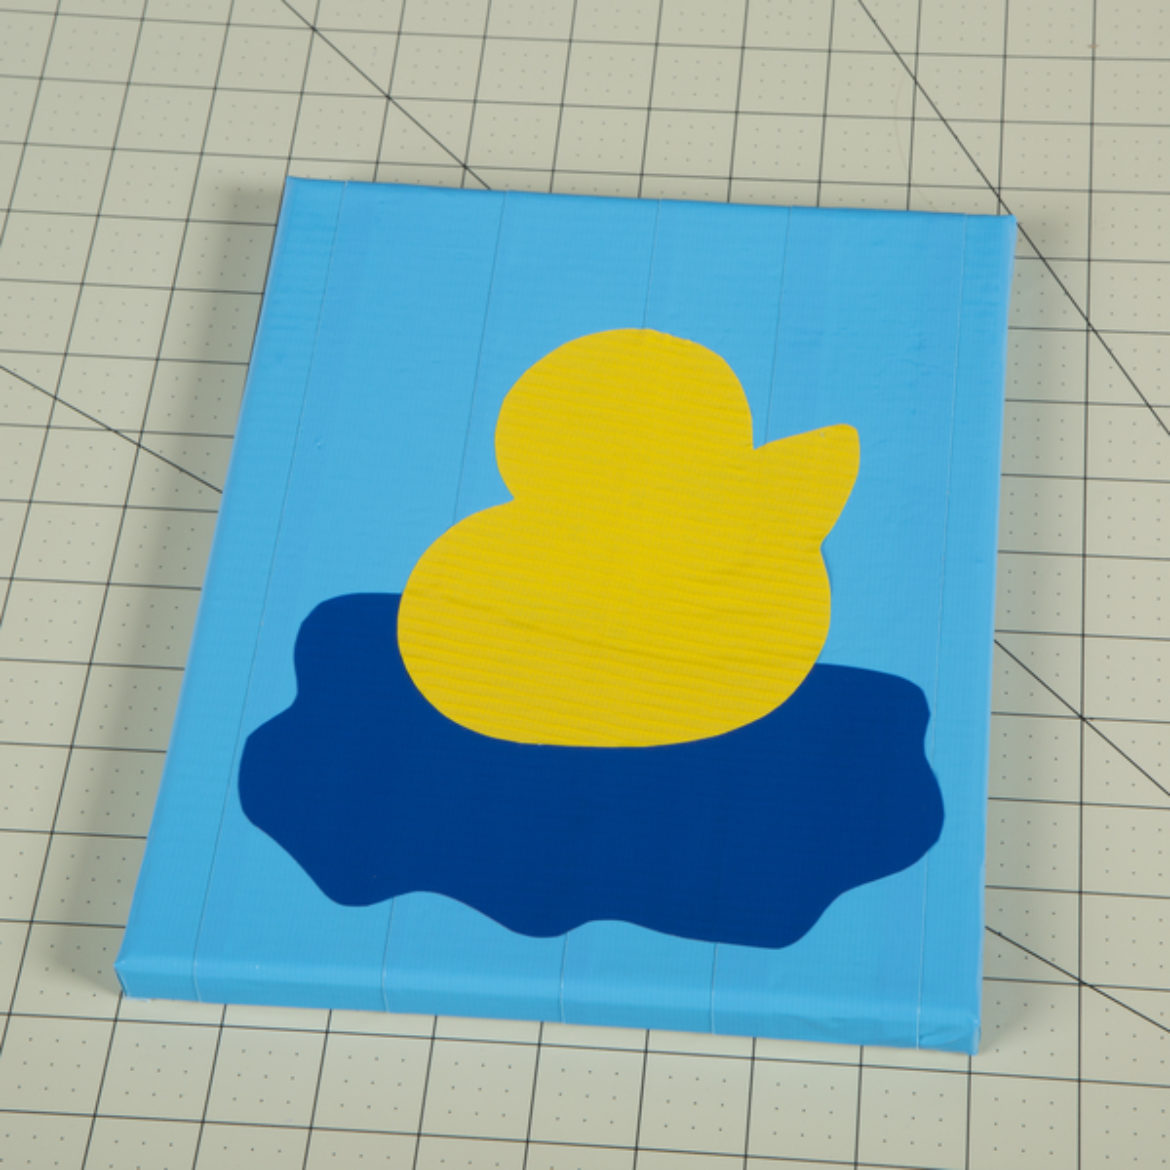 Duck outline placed on top of the the puddle piece from the previous step